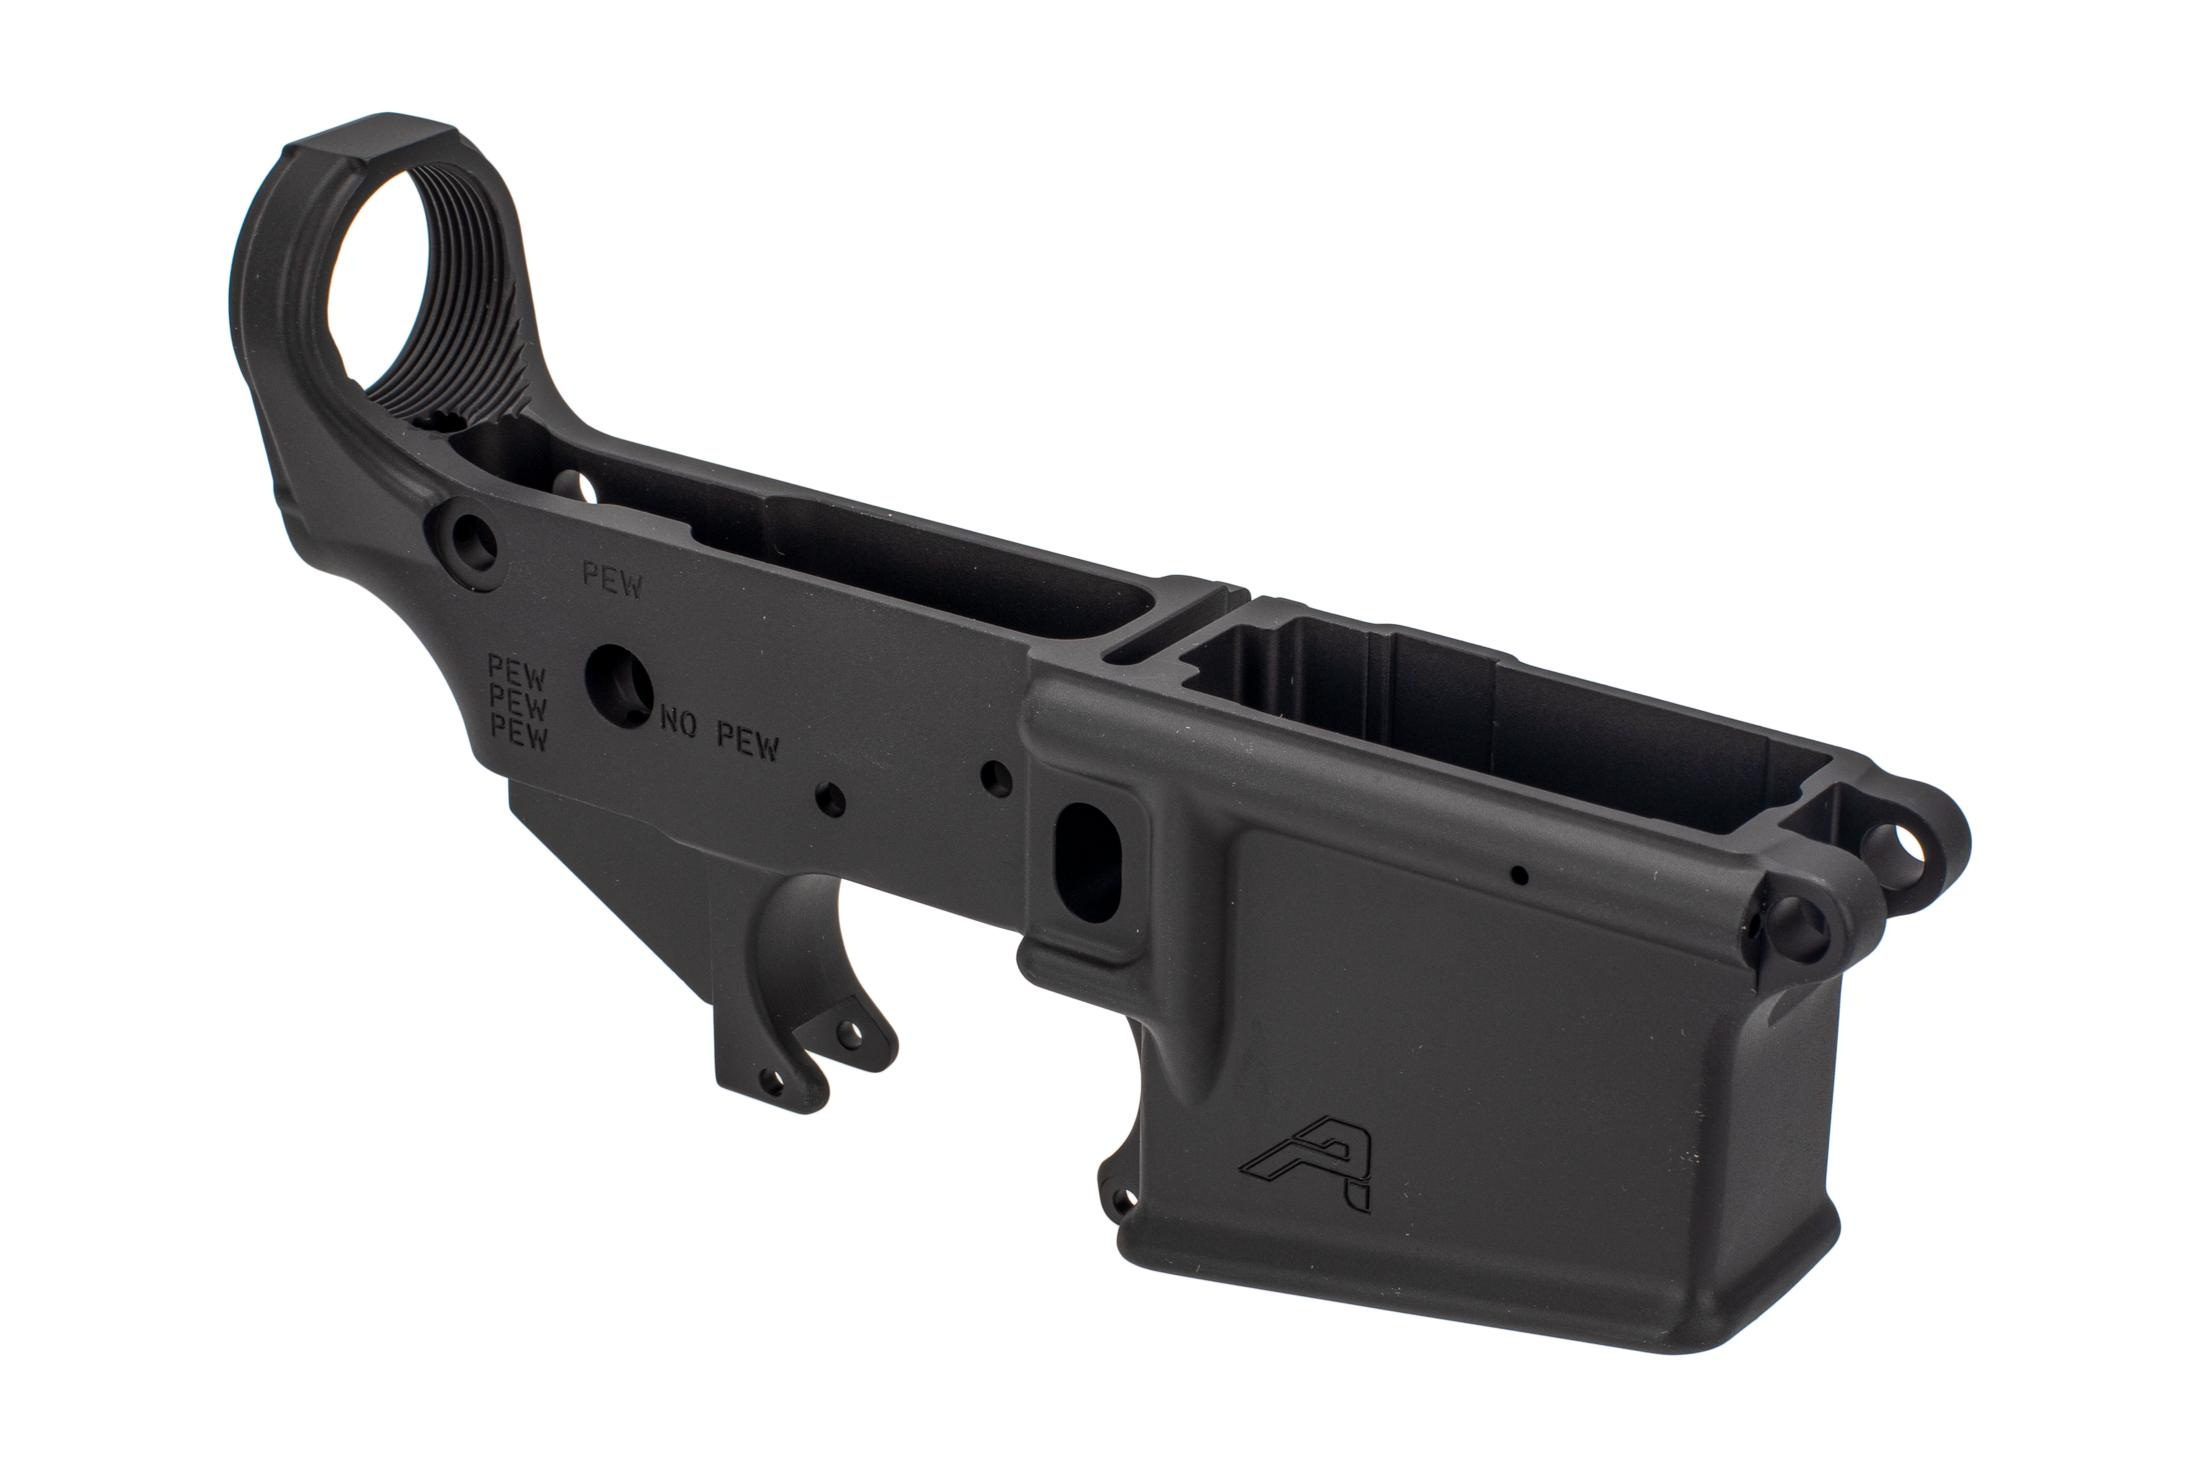 Aero Precision Stripped AR-15 lower receiver with special edition PEW engravings.